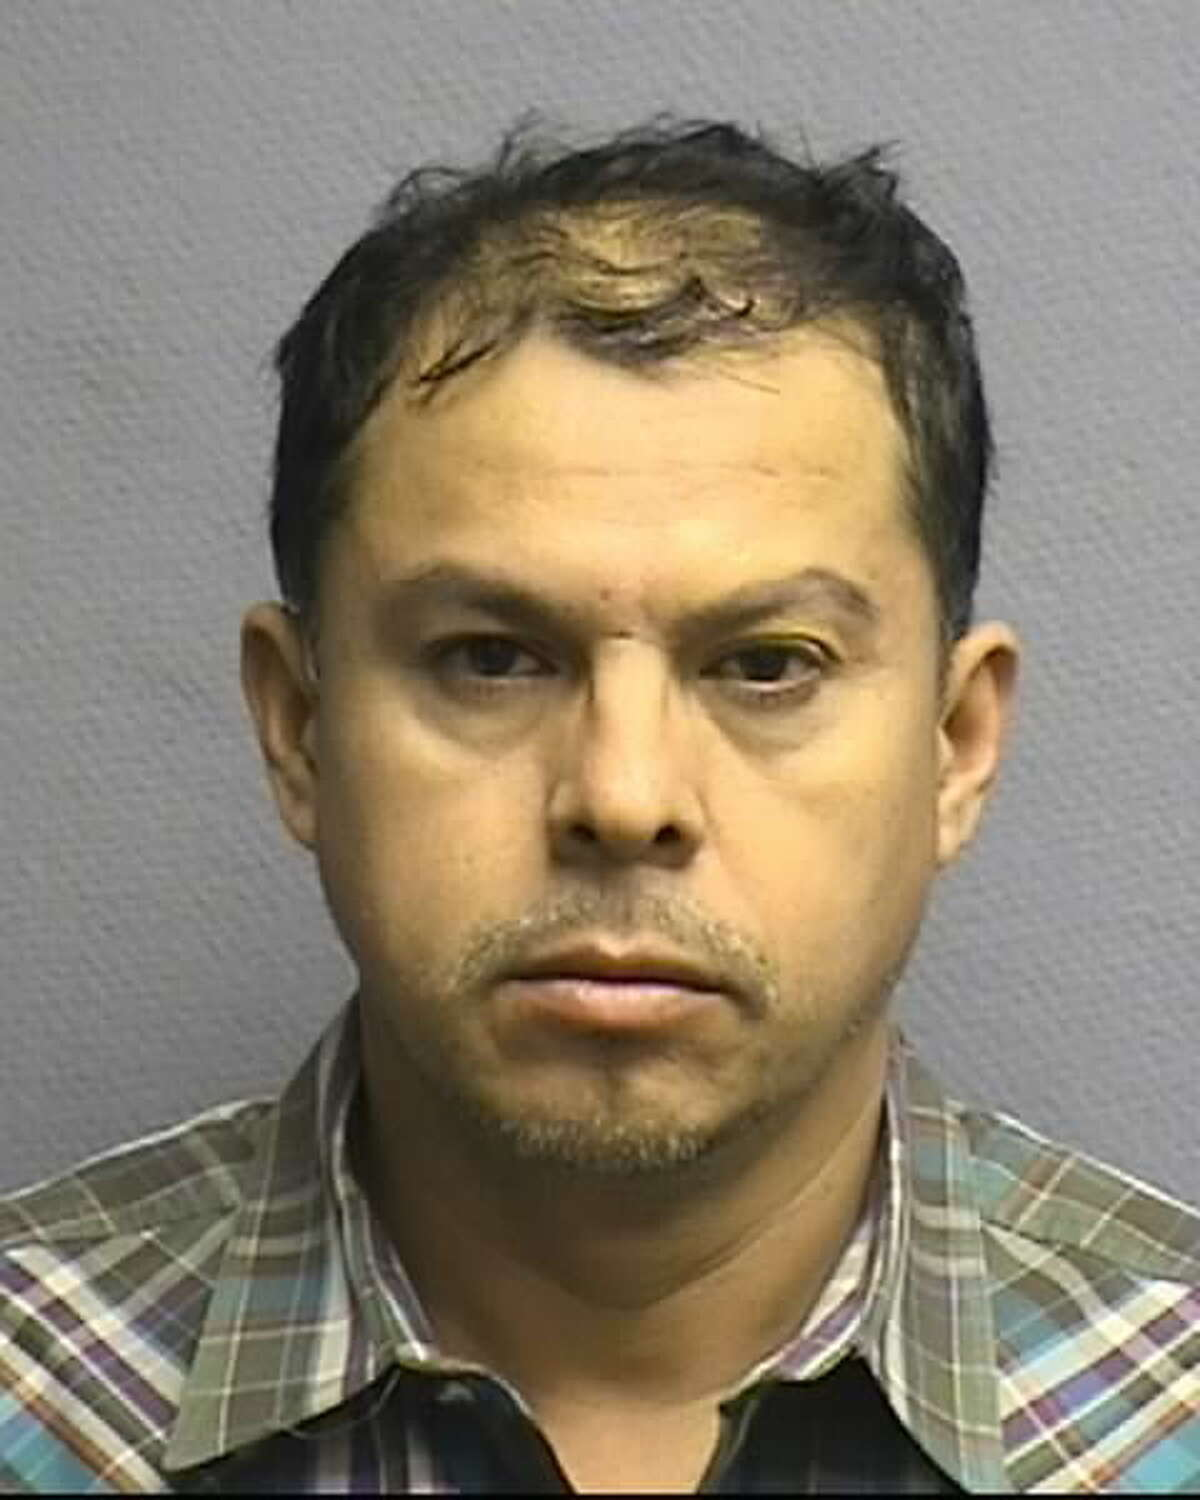 Silverio Contreras was arrested in January 2016 and charged with felony-level DWI - 3rd of More.